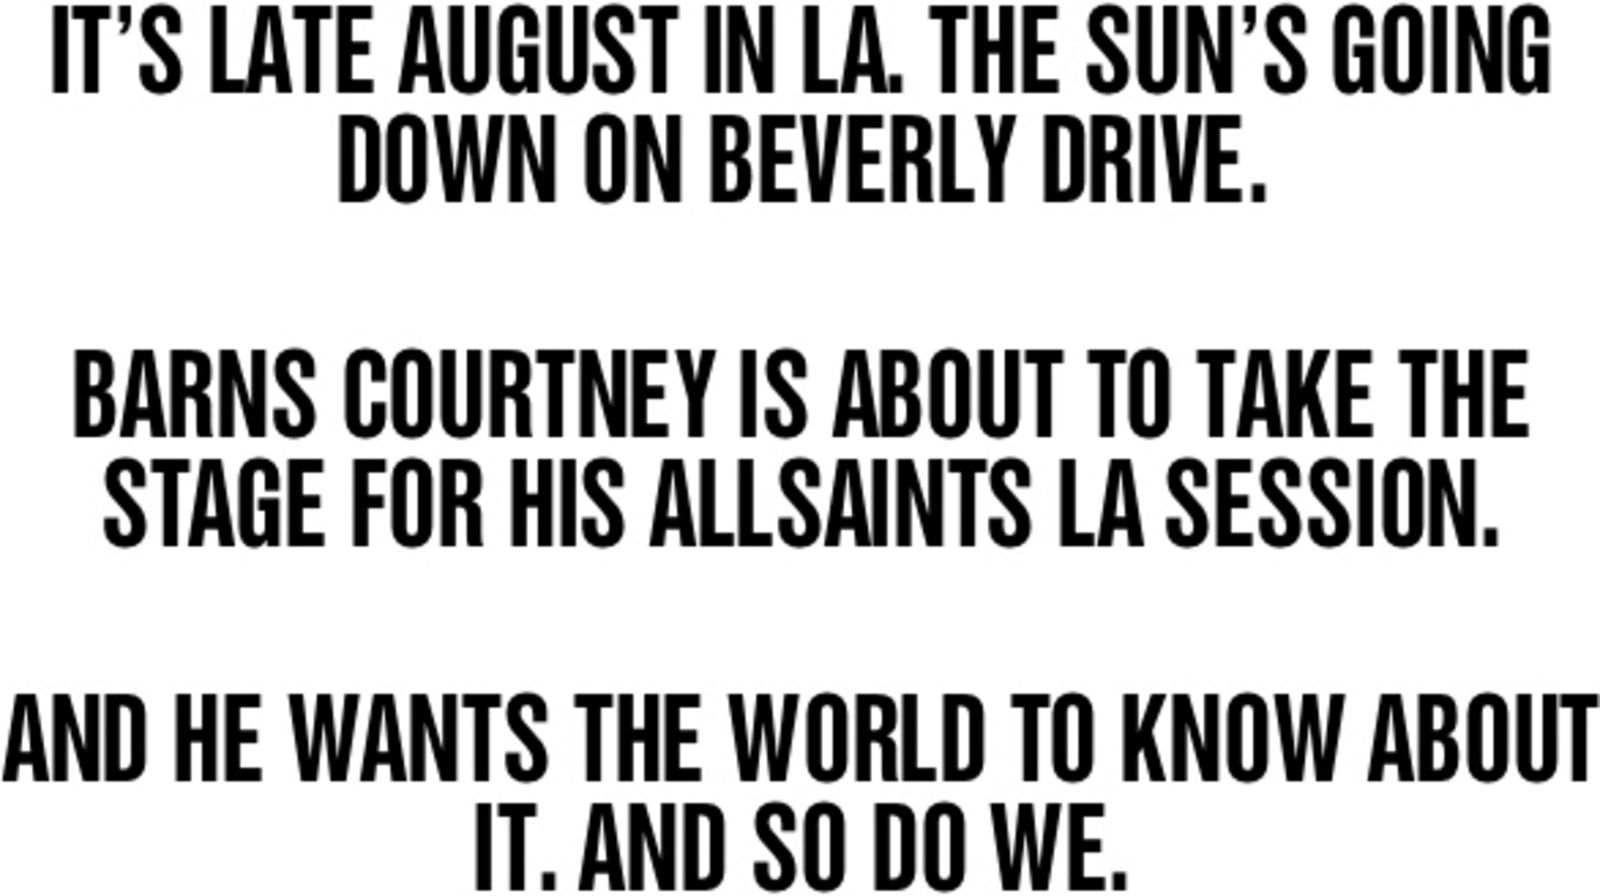 IT'S LATE AUGUST IN LA. THE SUN'S GOING DOWN ON BEVERLY DRIVE. BARNS COURTNEY IS ABOUT TO TAKE THE STAGE FOR HIS ALLSAINTS LA SESSION. AND HE WANTS THE WORLD TO KNOW ABOUT IT. AND SO DO WE.